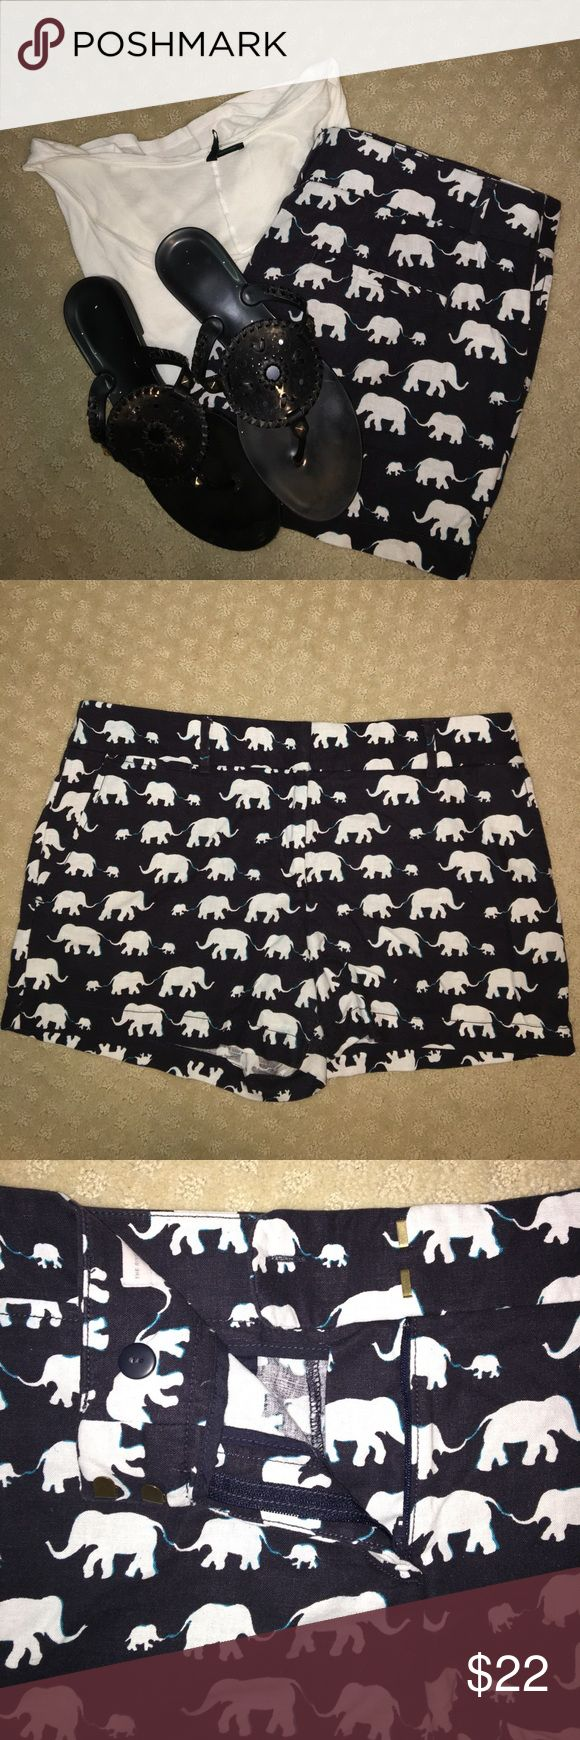 Anne Taylor Loft riviera short Navy elephant shorts! 55% linen and 45% cotton. Very comfortable and no noticeable signs of wear! LOFT Shorts